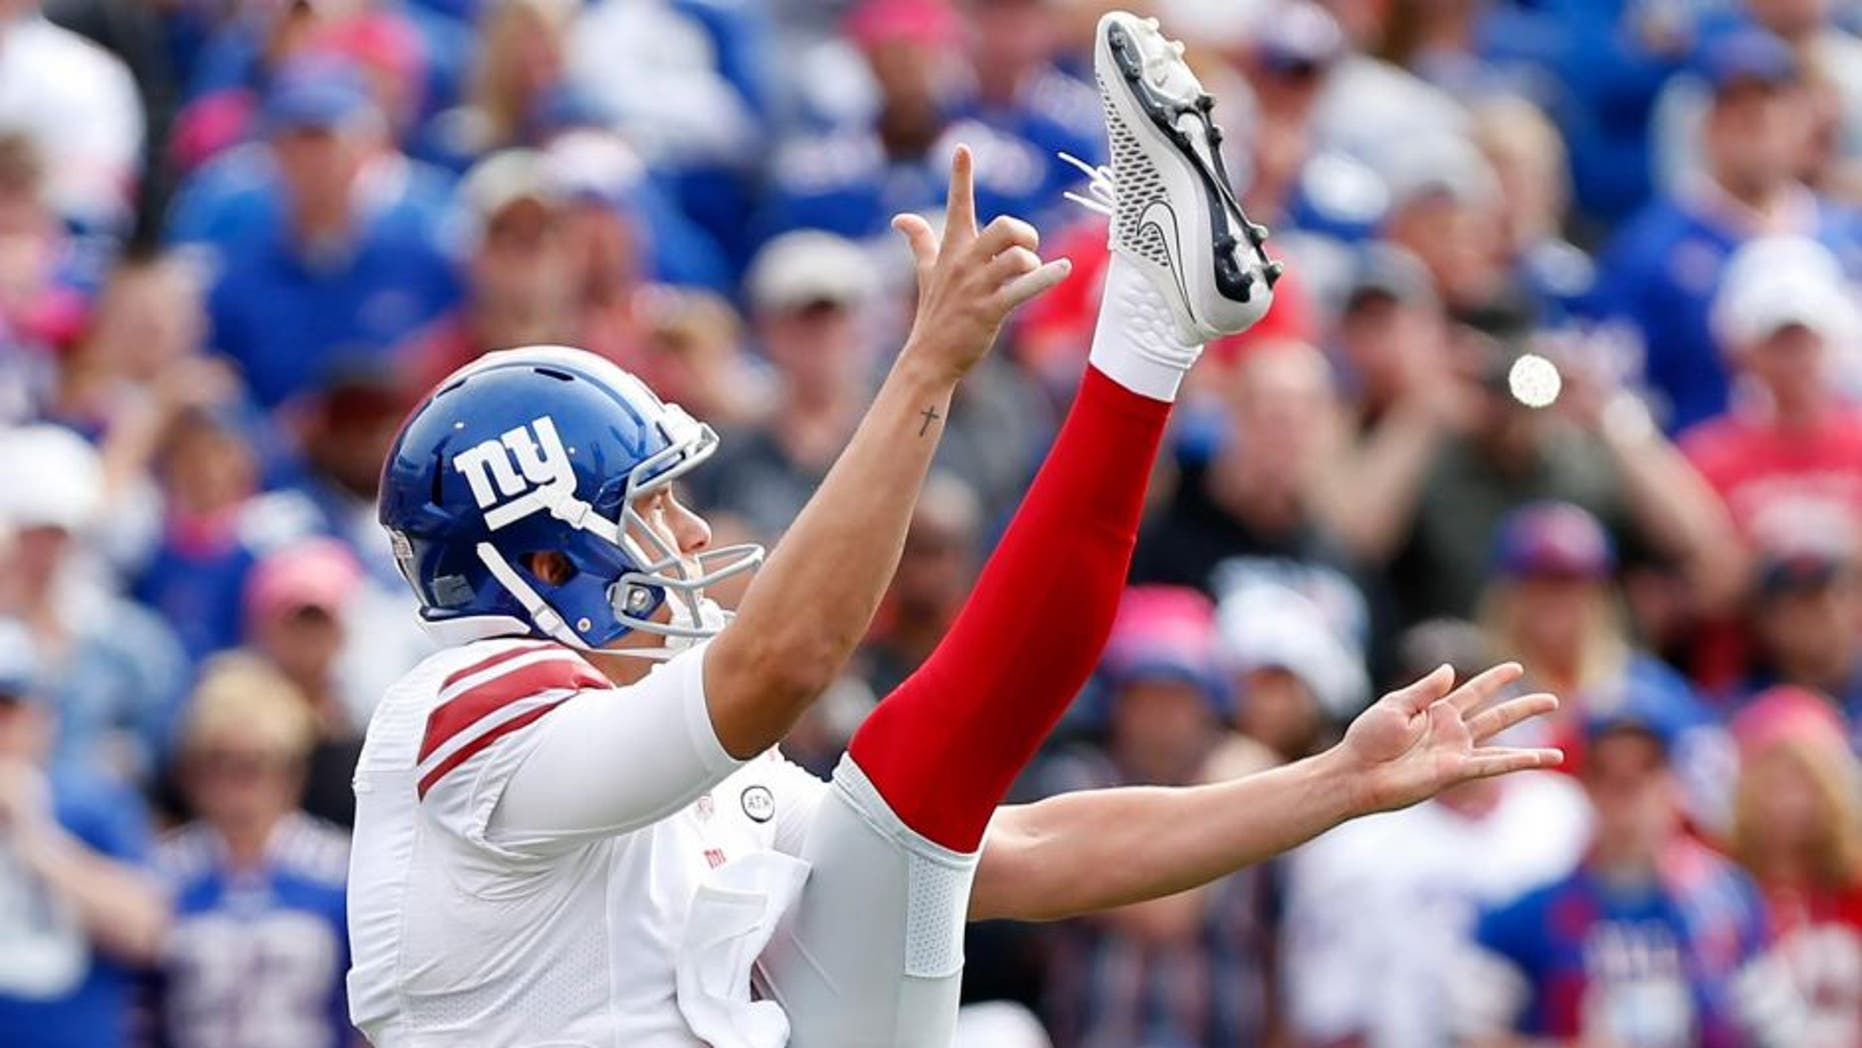 Oct 4, 2015; Orchard Park, NY, USA; New York Giants punter Brad Wing (9) during the game against the Buffalo Bills at Ralph Wilson Stadium. Mandatory Credit: Kevin Hoffman-USA TODAY Sports